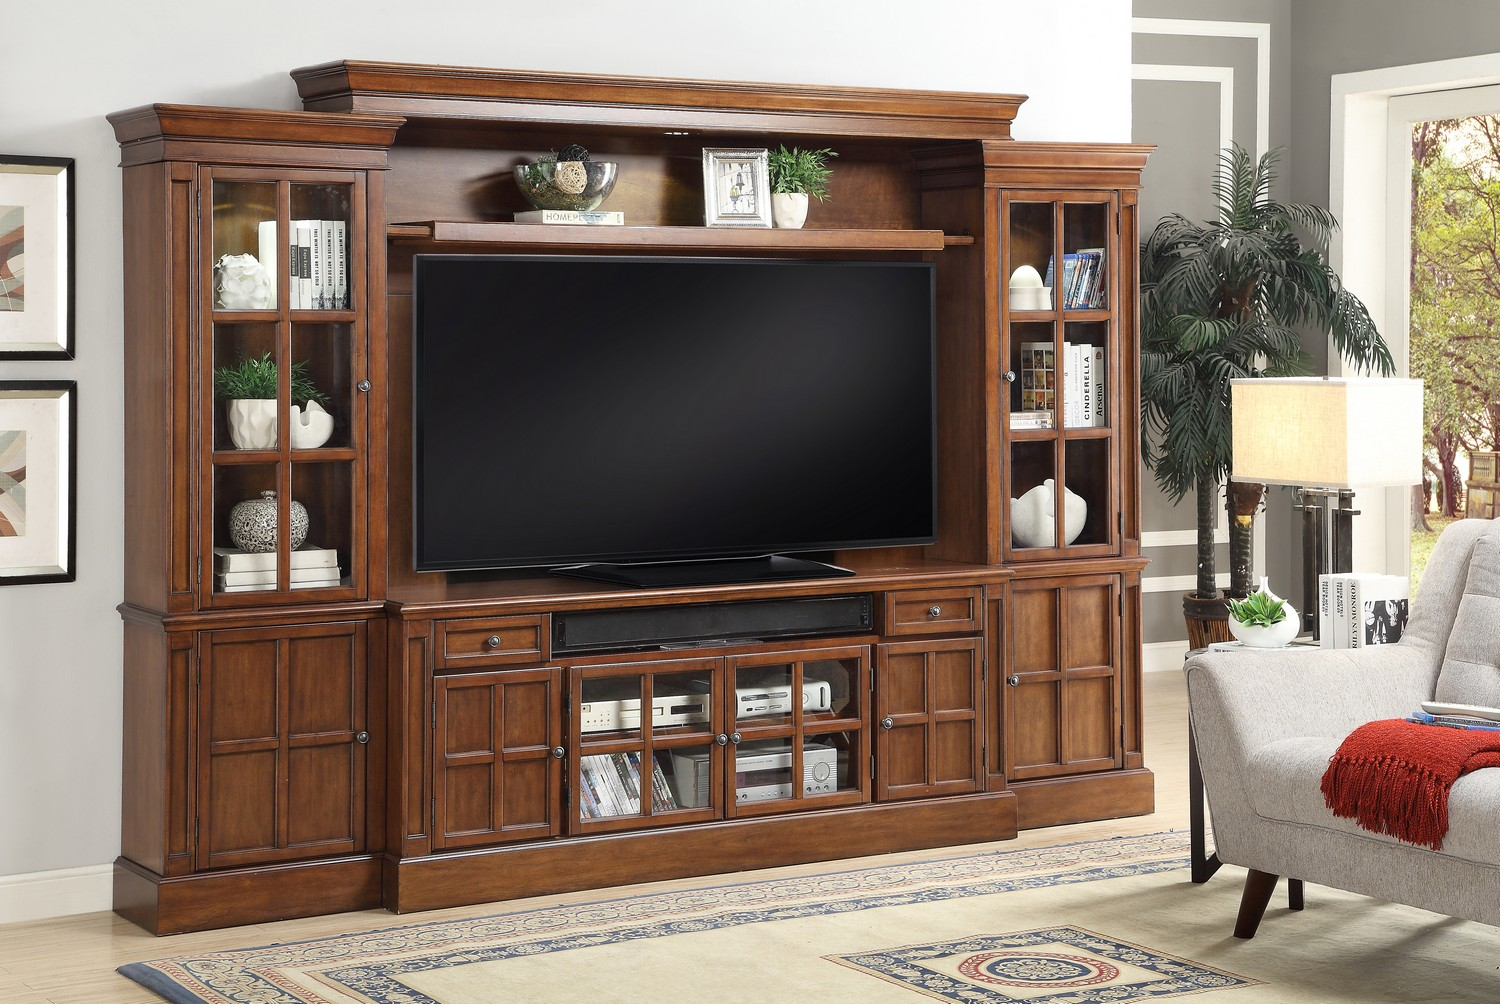 Parker House Churchill 4pc 72-inch Entertainment Wall